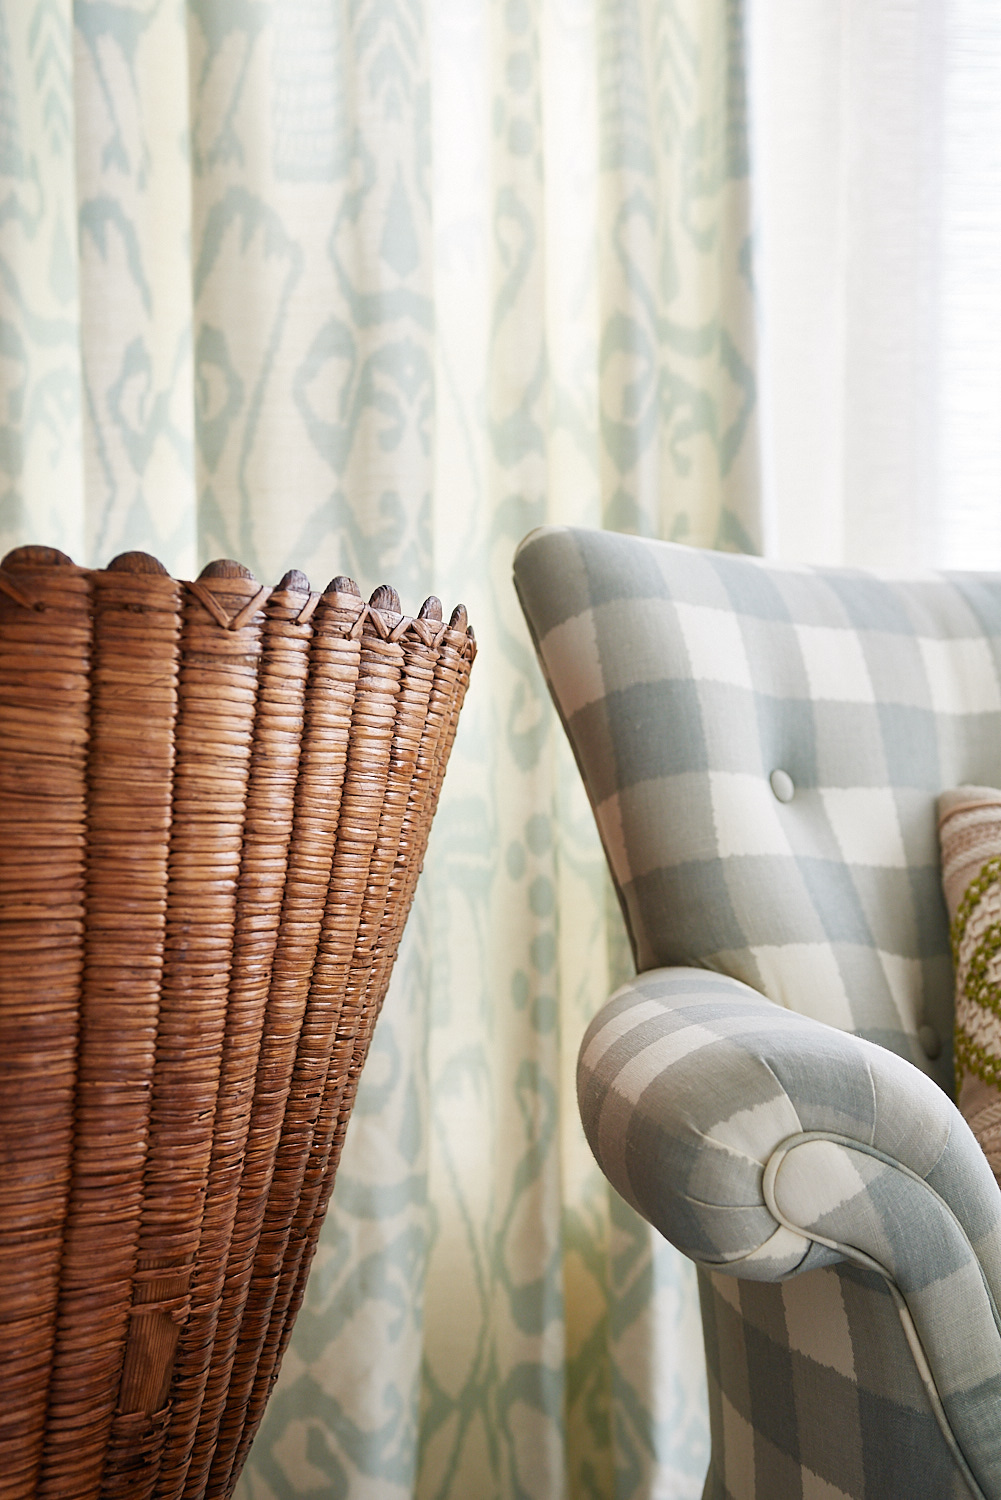 Upholstered plaid chair with tufts and background drapery